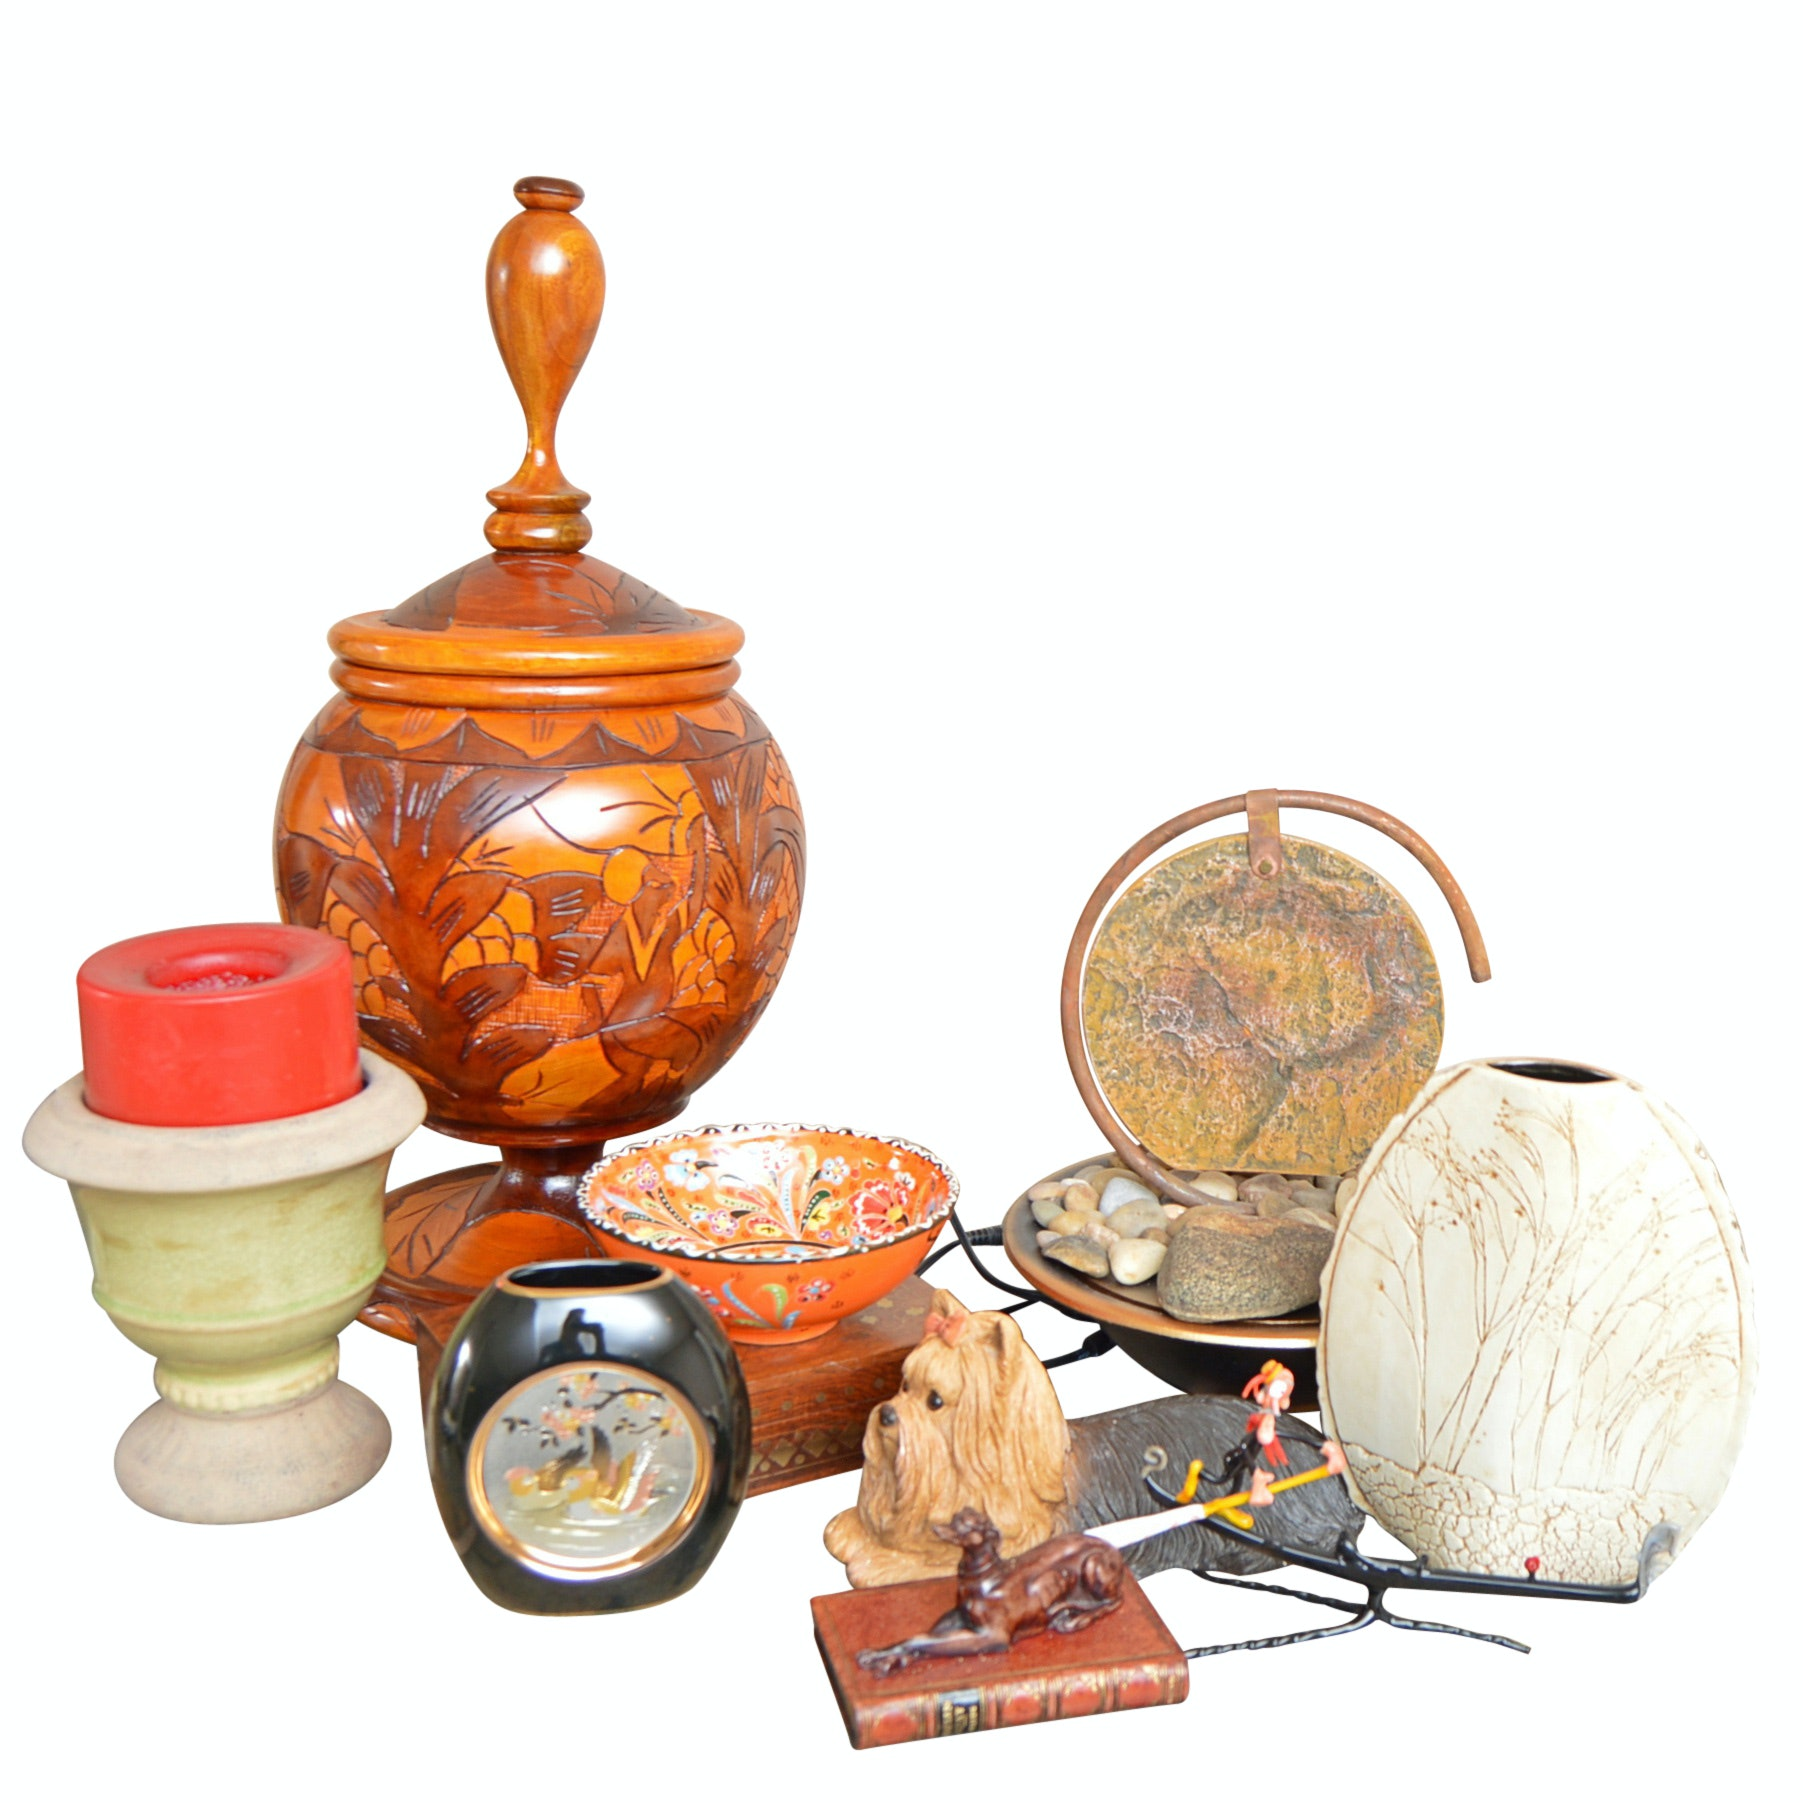 Pottery and Decor with Electric Bowl Fountain